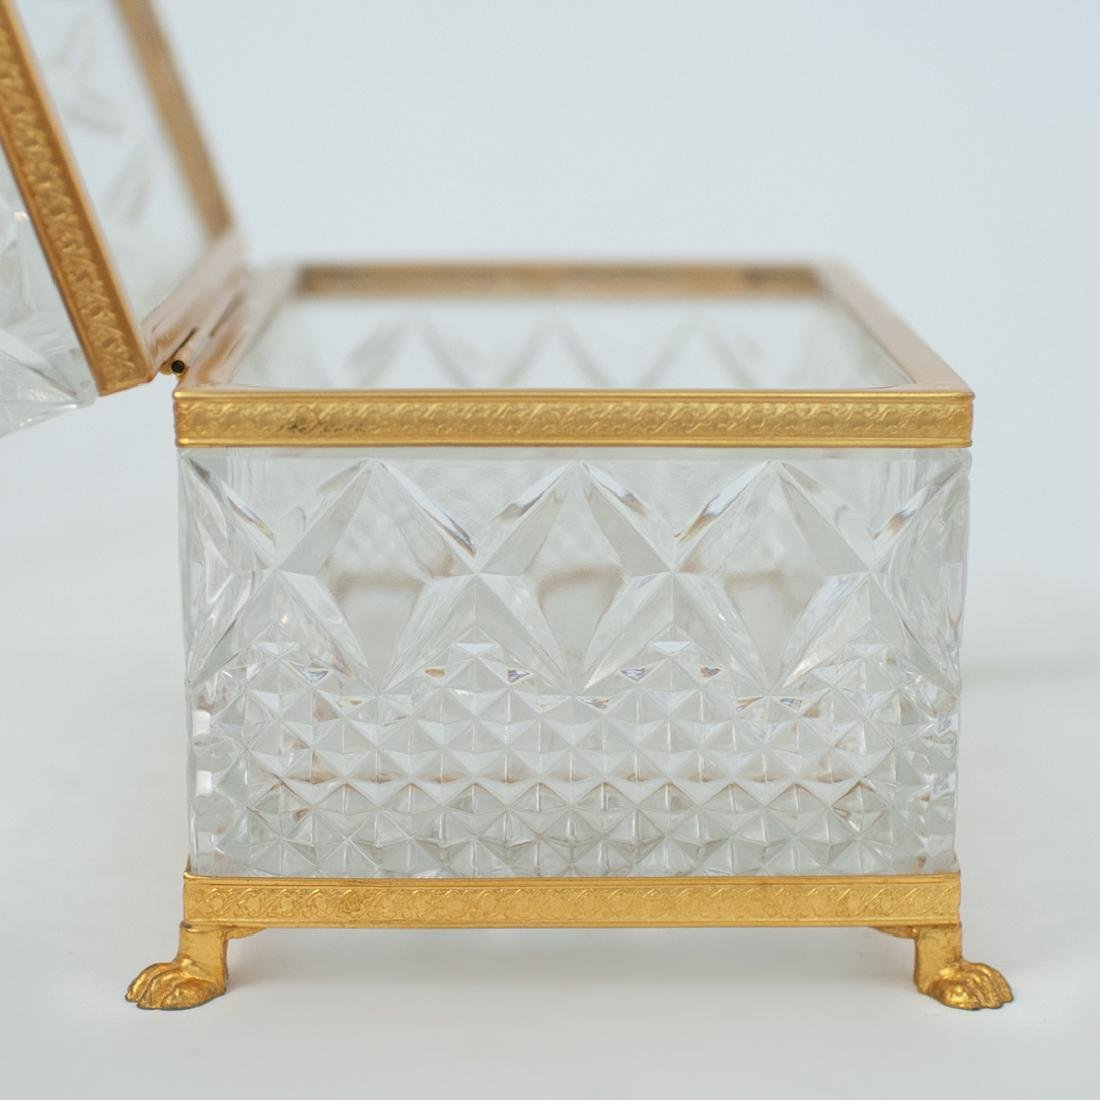 Antique Cut Crystal and Gilt Bronze Lidded Box - 3